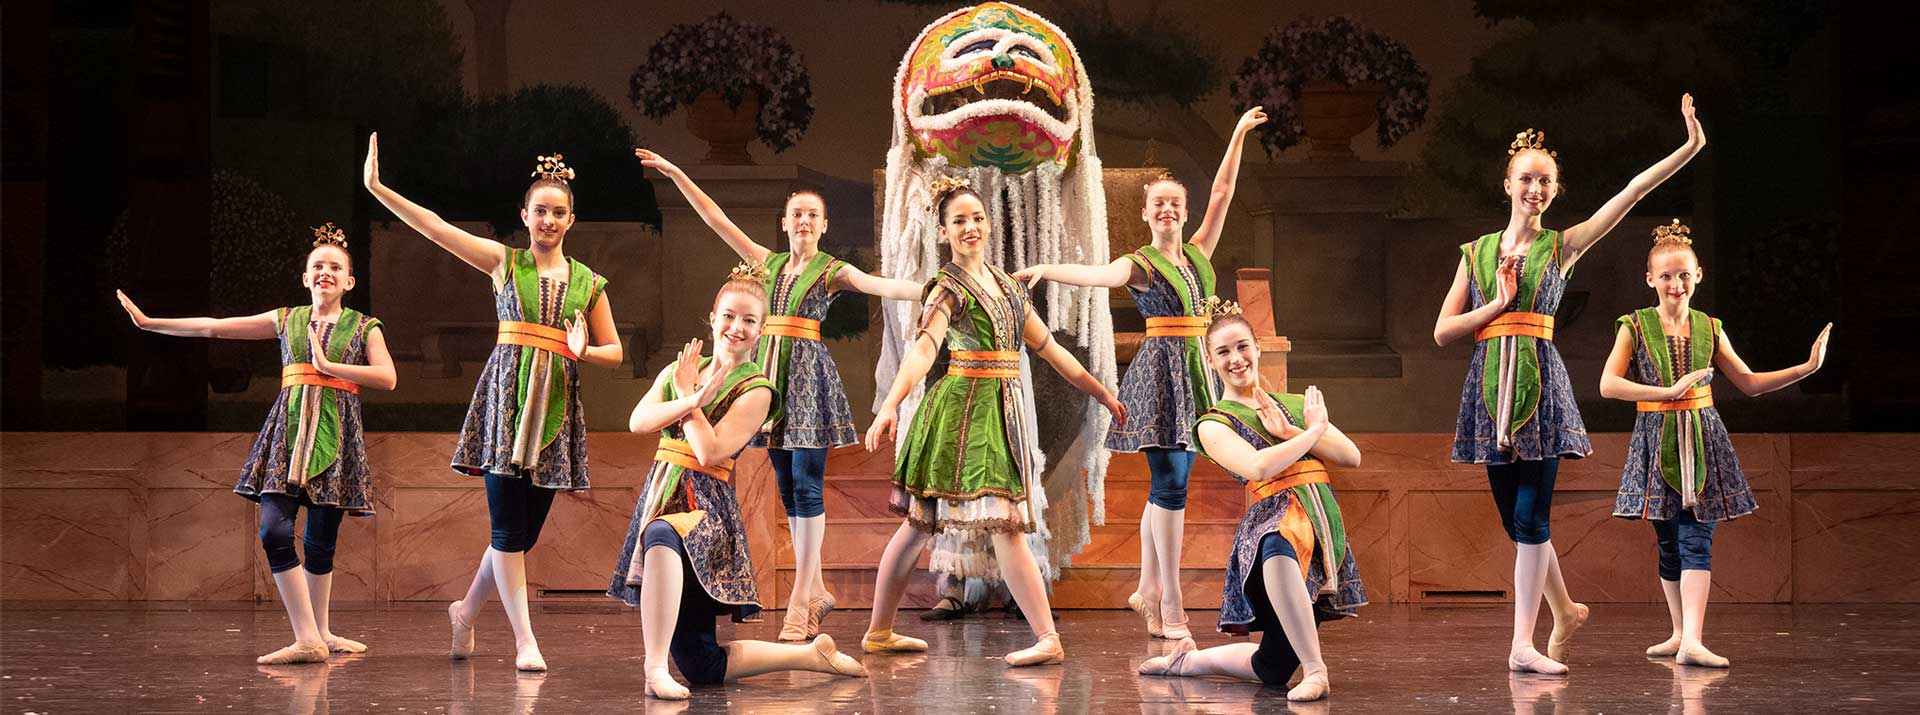 The Nutcracker schedule at the Garden city Ballet - dancers on stage